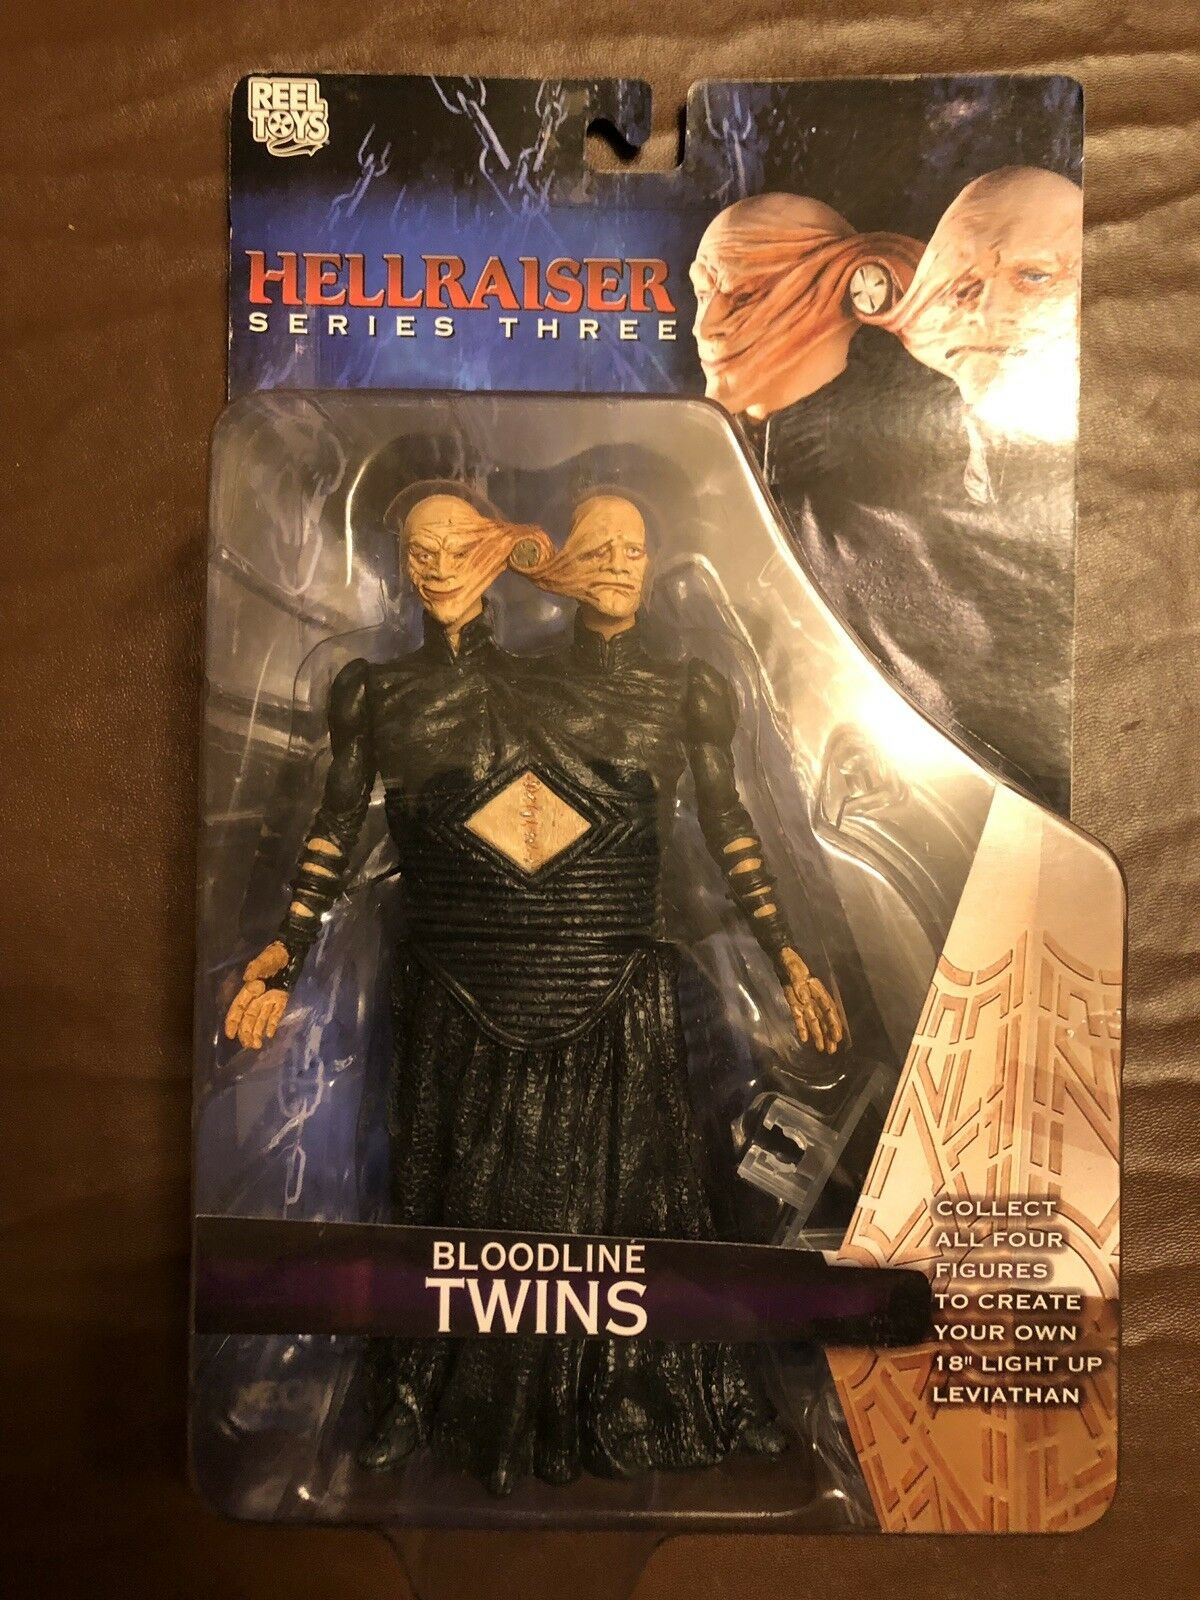 NECA Hellraiser Series 3 Bloodline Twins  AFHRS3 15